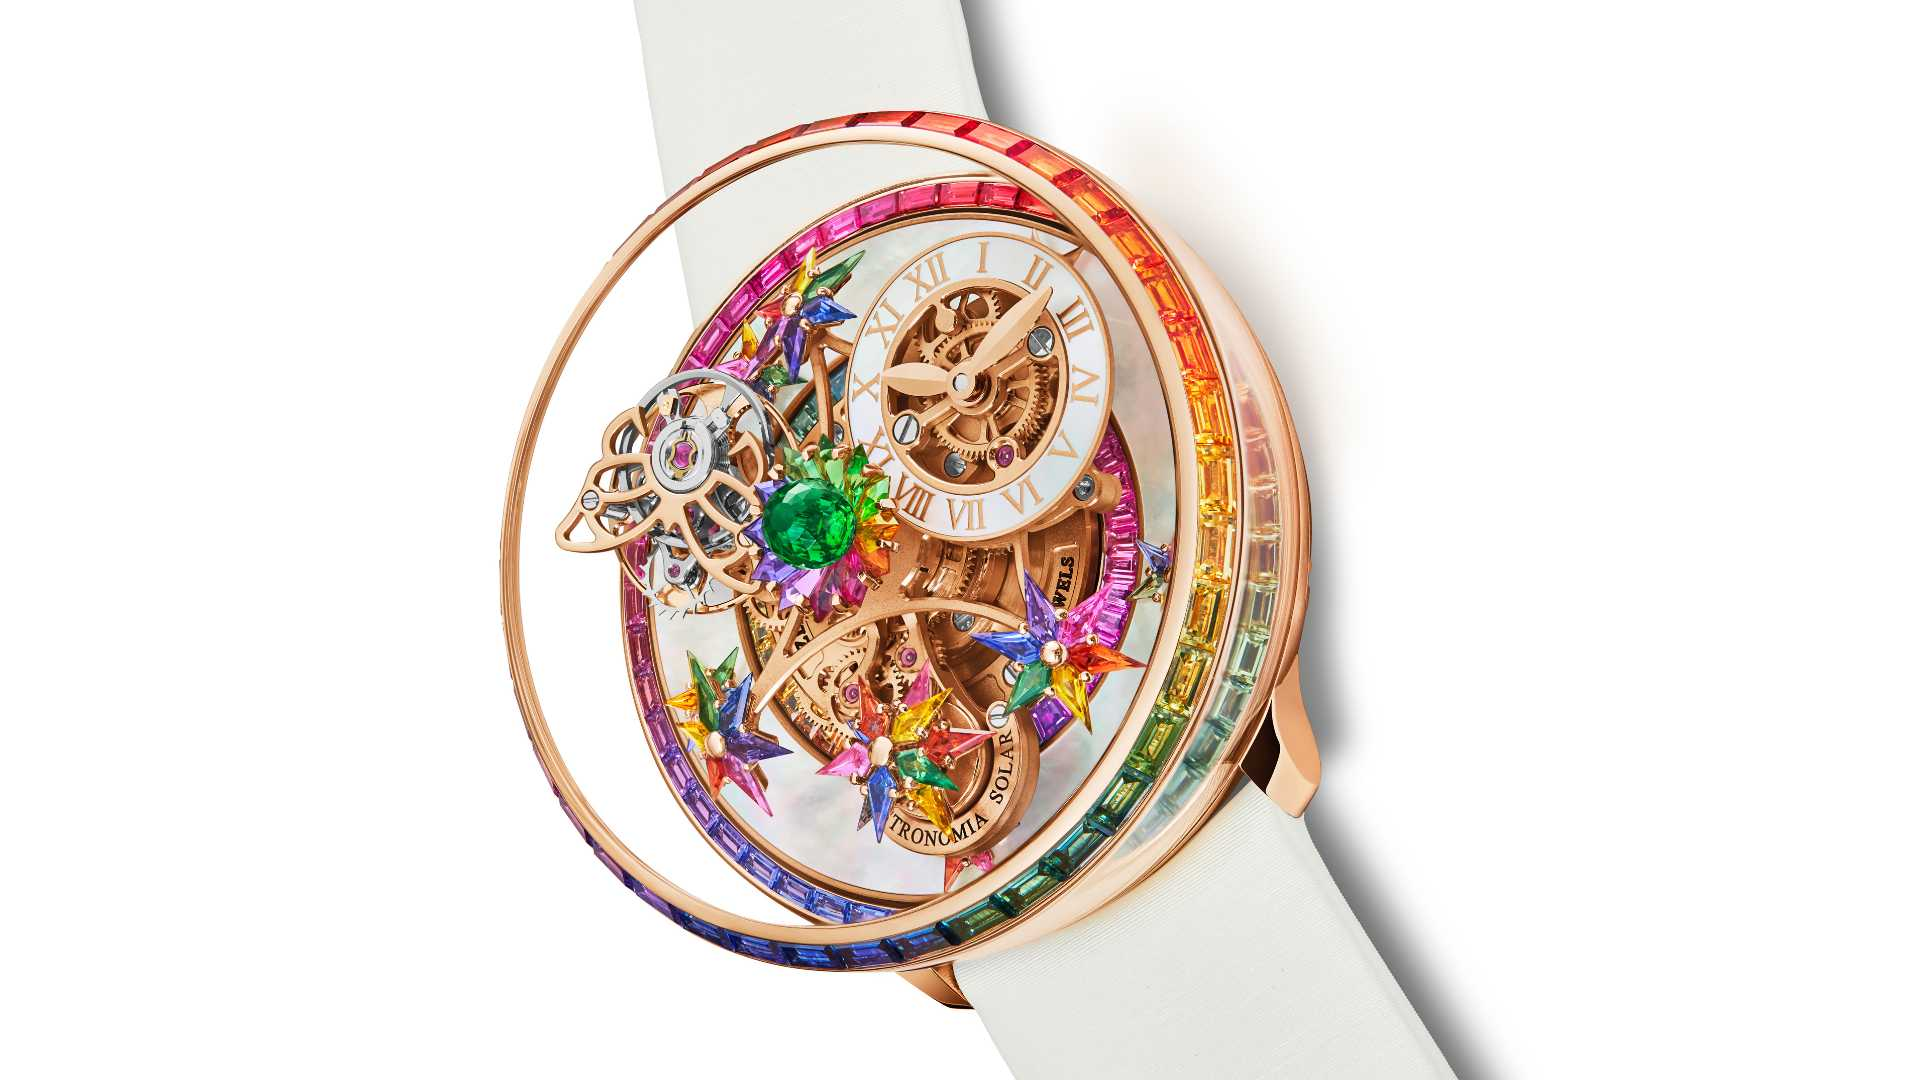 Jacob & Co's The Astronomia Fleurs de Jardin is a celebration of craftsmanship